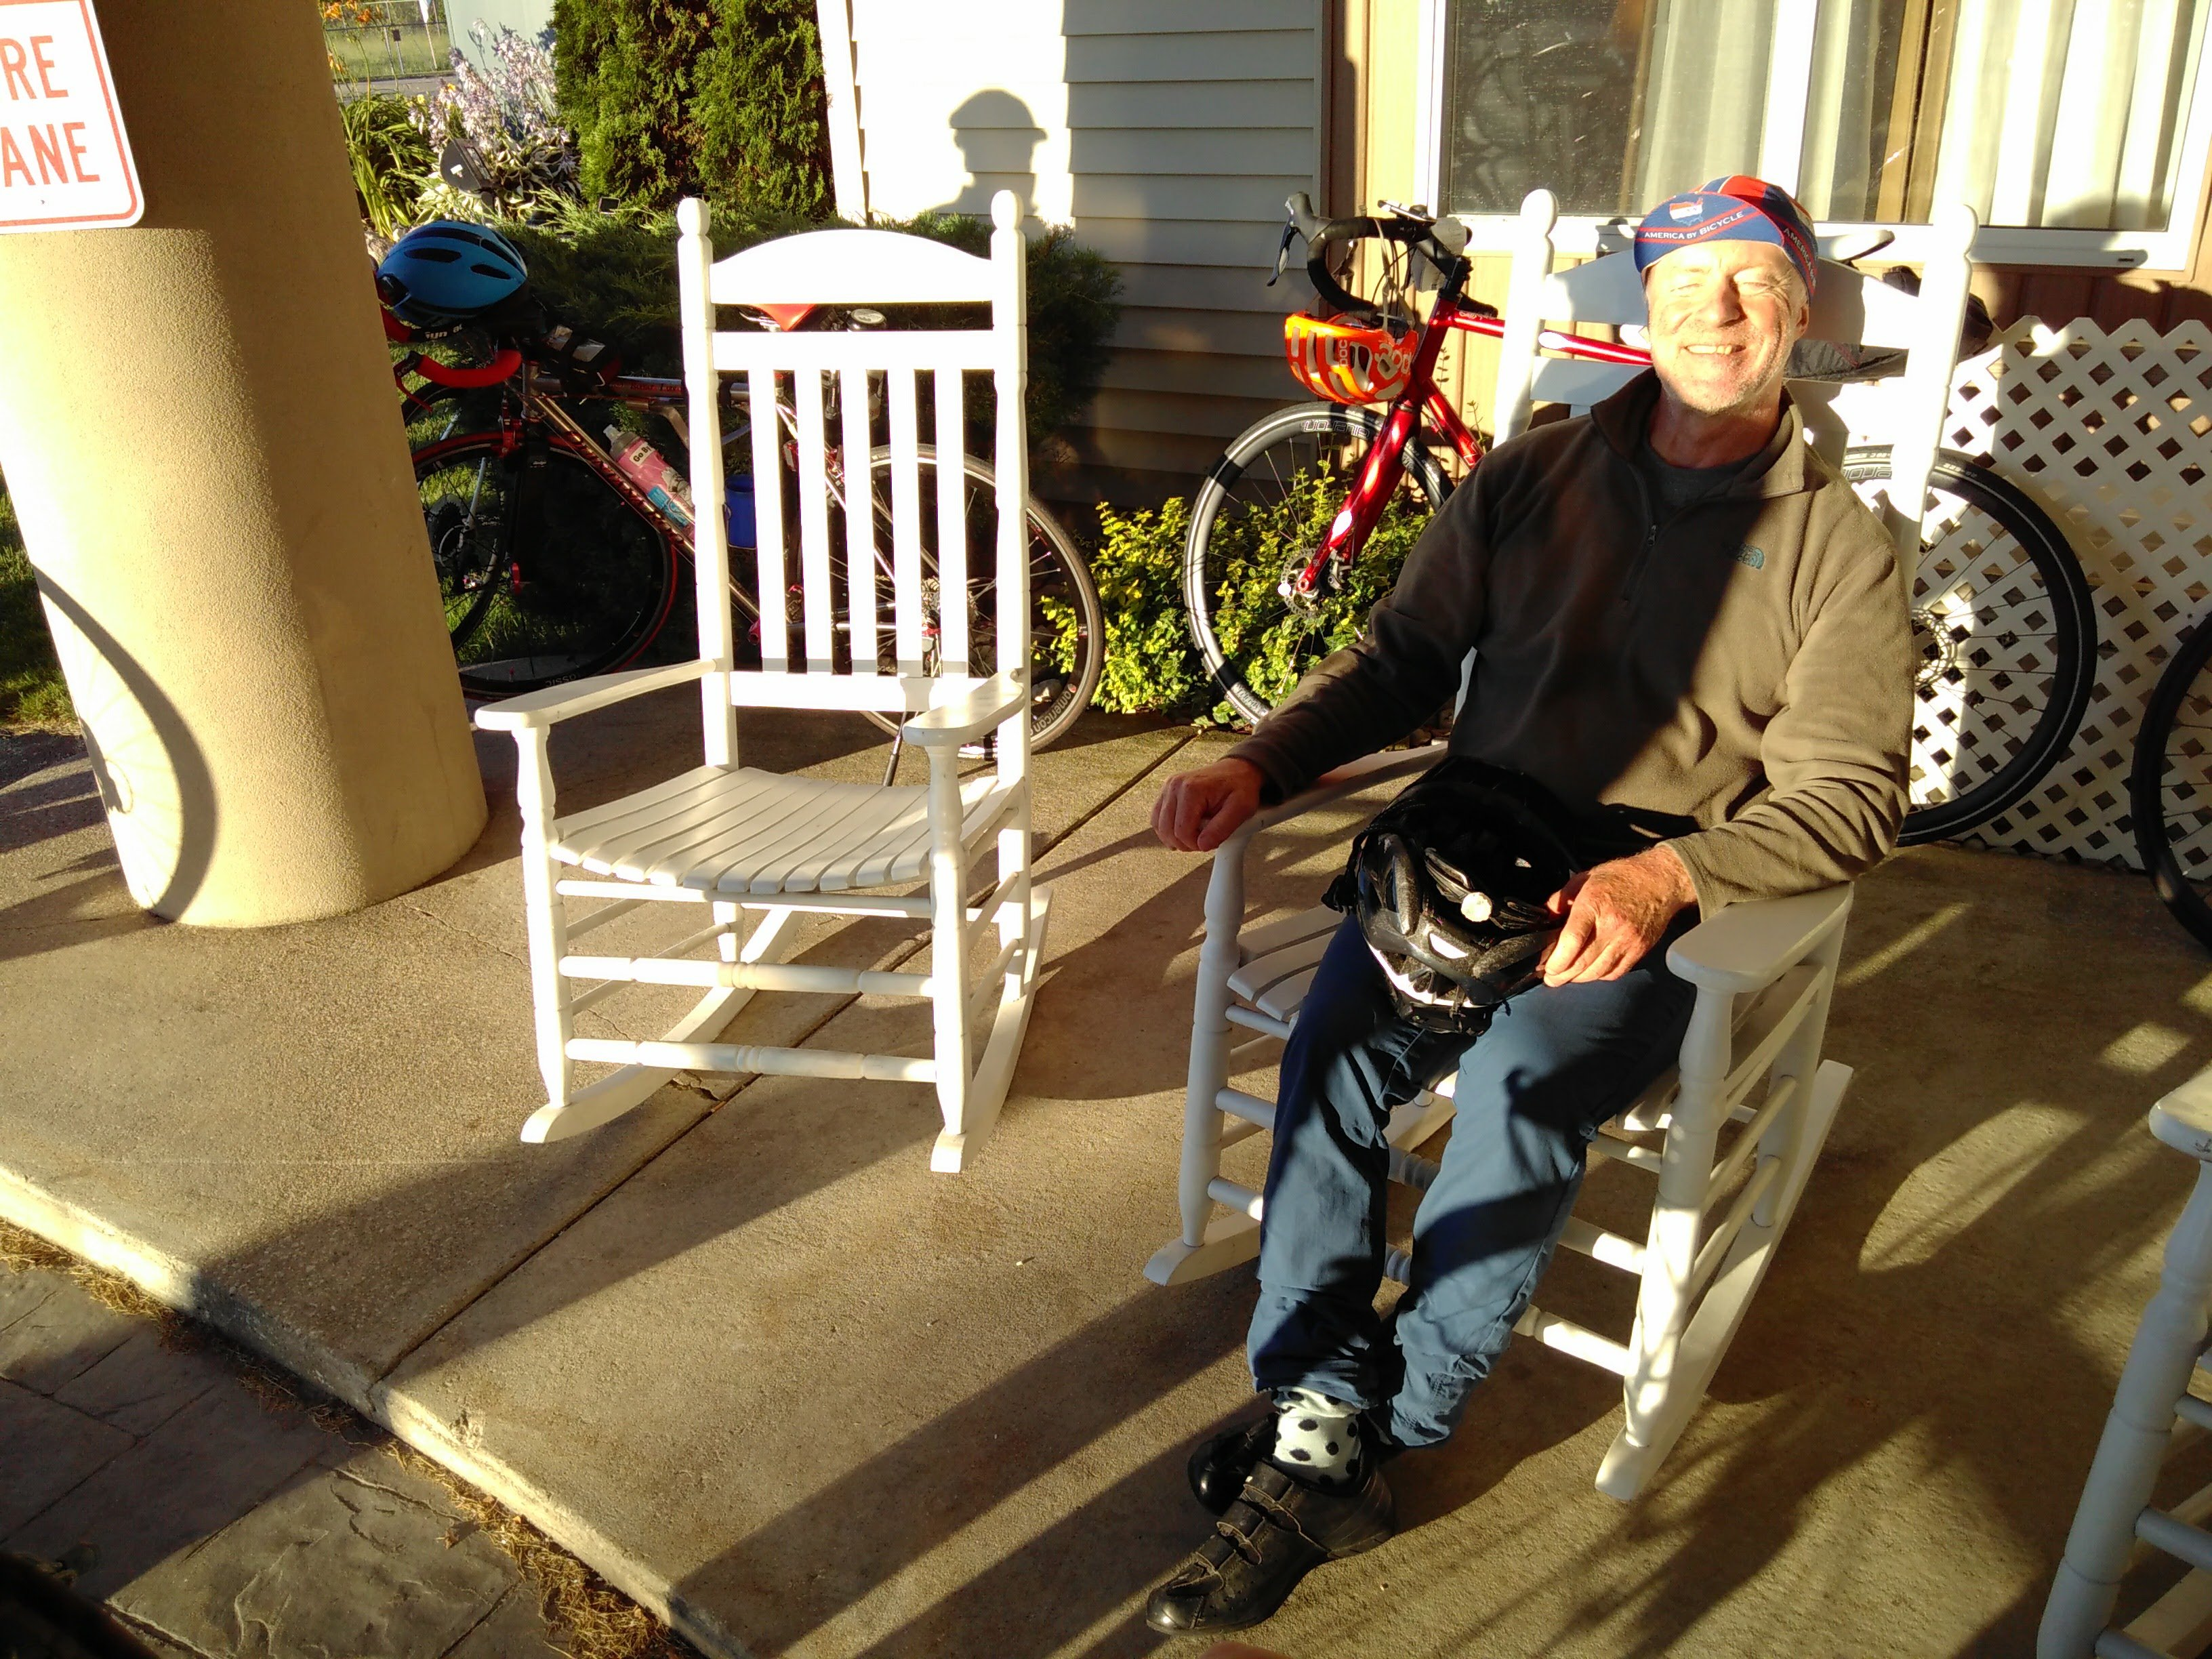 Chris sits in a rocking chair as the sun sets. He has a big grin on his face.